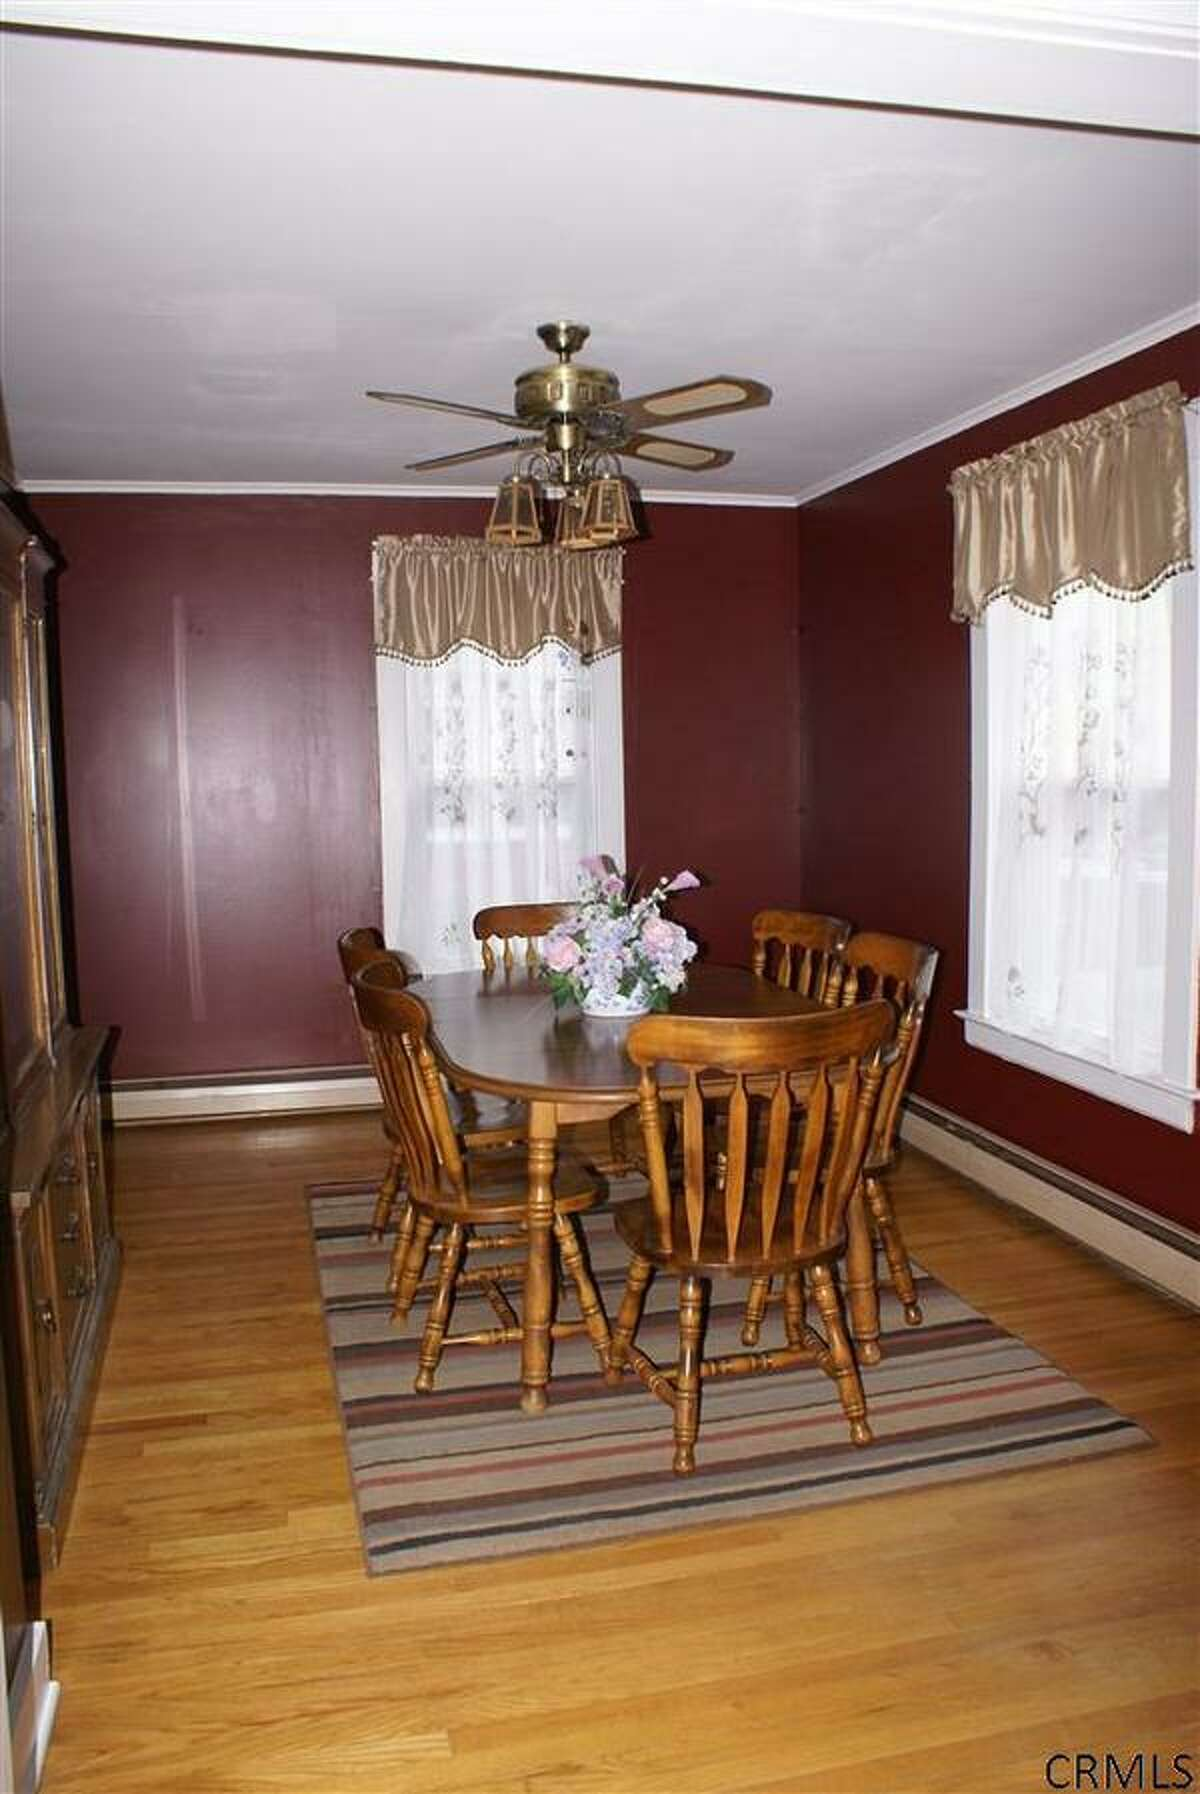 $124,900. 107 SOUTH REYNOLDS ST, Scotia, NY 12302. Open Sunday, February 16 from 1:00p.m. - 3:00 p.m.View this listing.